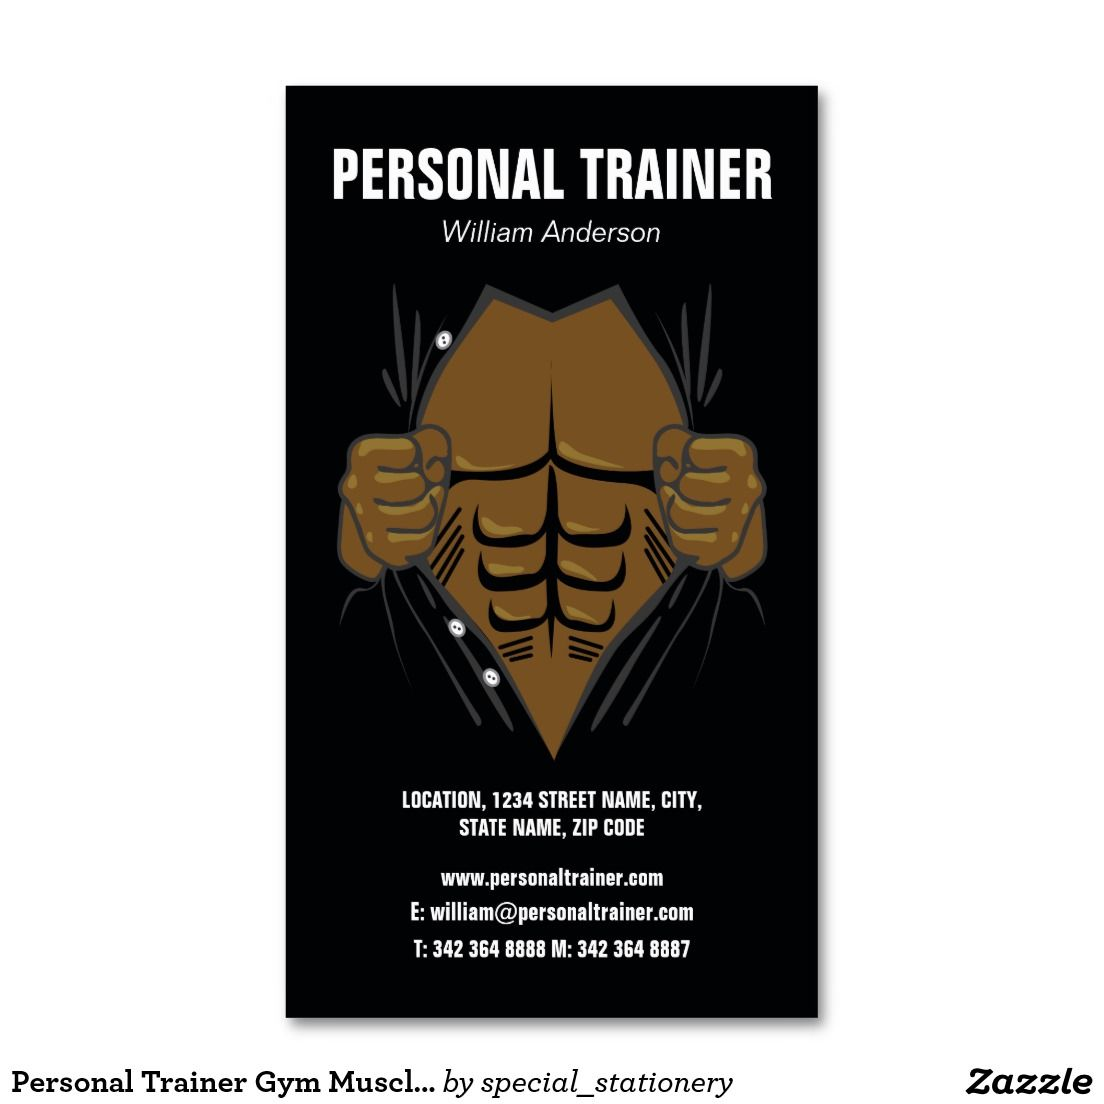 Personal Trainer Gym Muscle Exercise Business Card